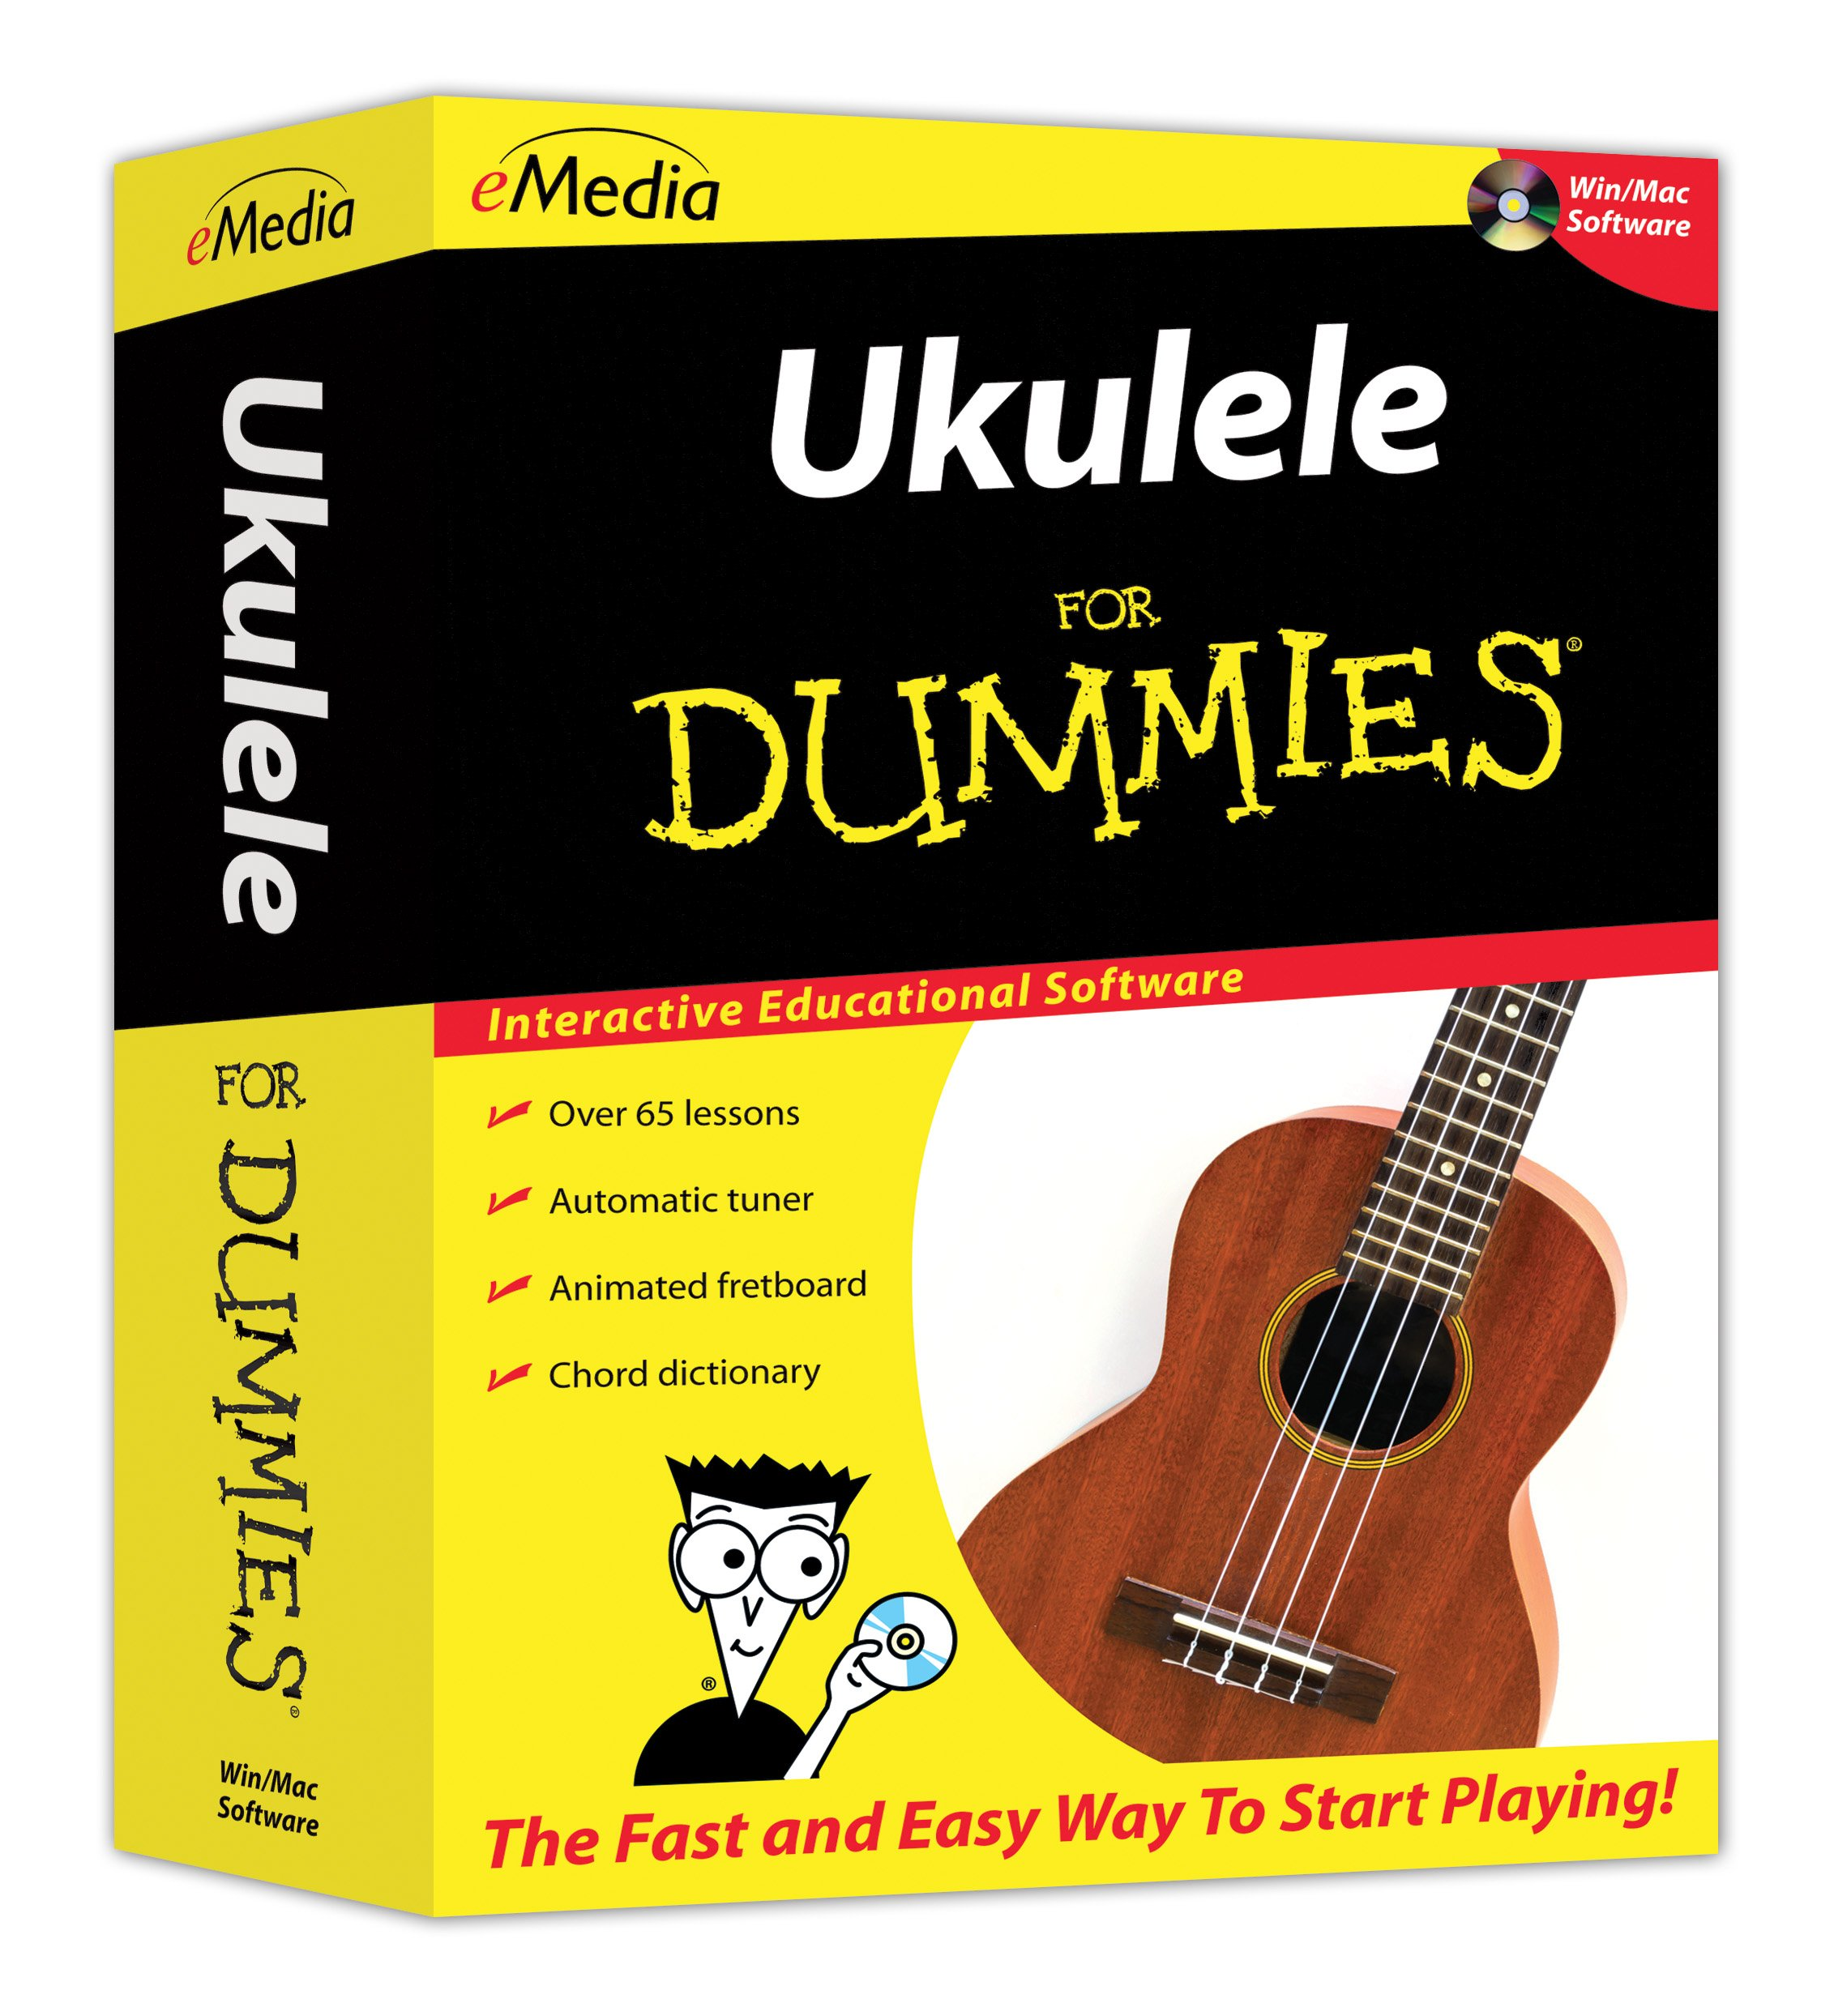 eMedia Ukulele For Dummies